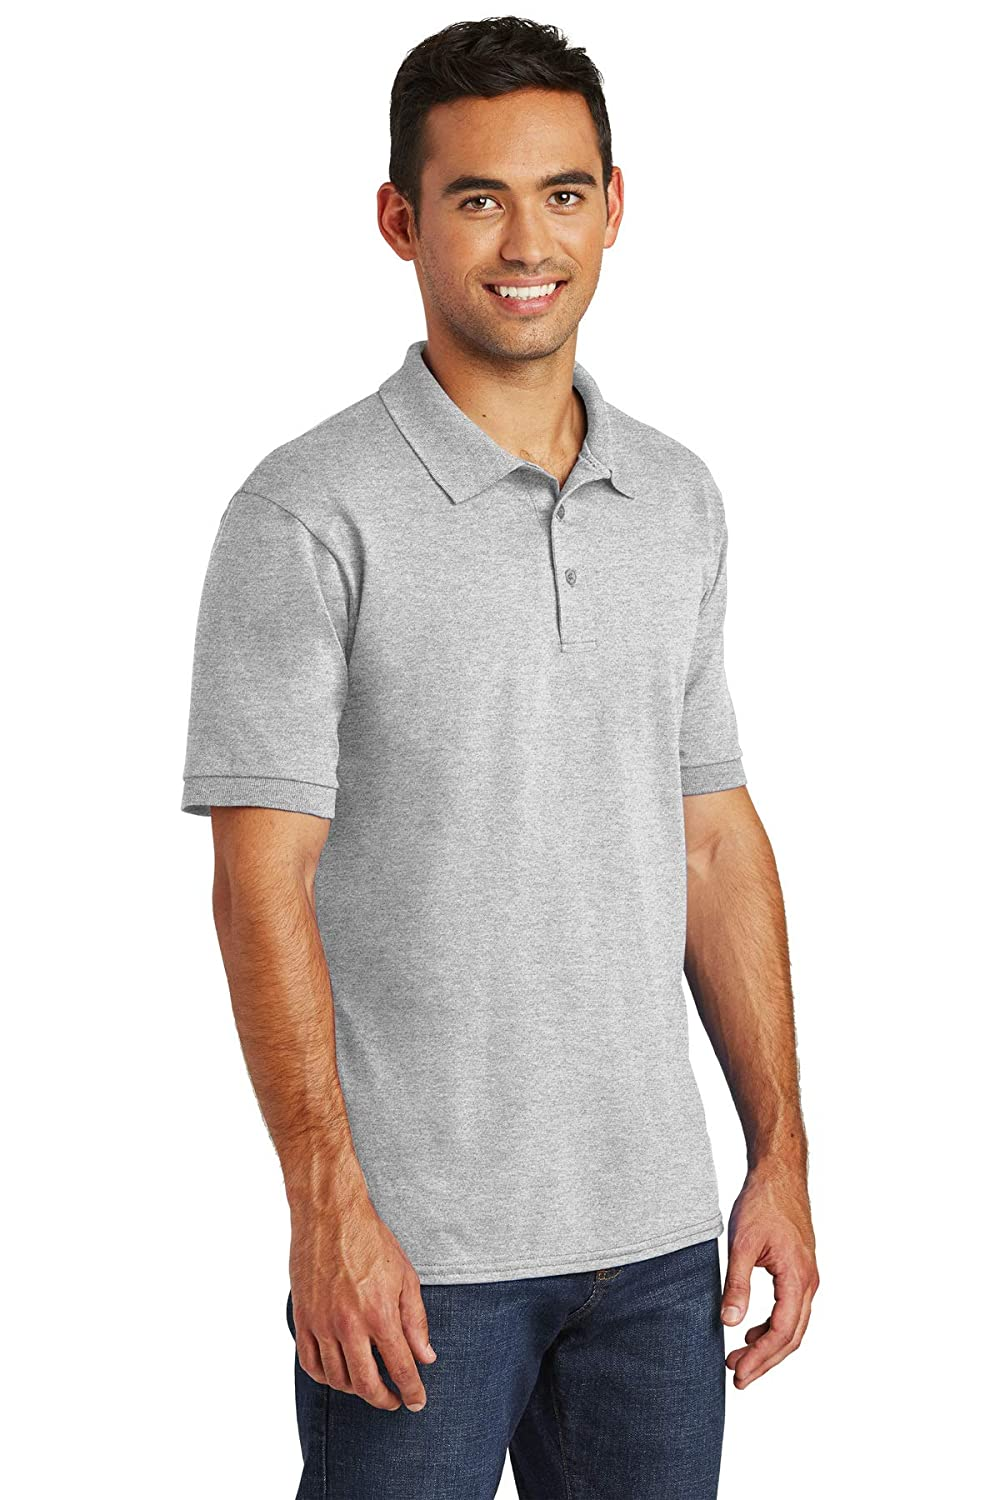 Amazon Custom Embroidered Polo Shirts Jerzees Spotshield And